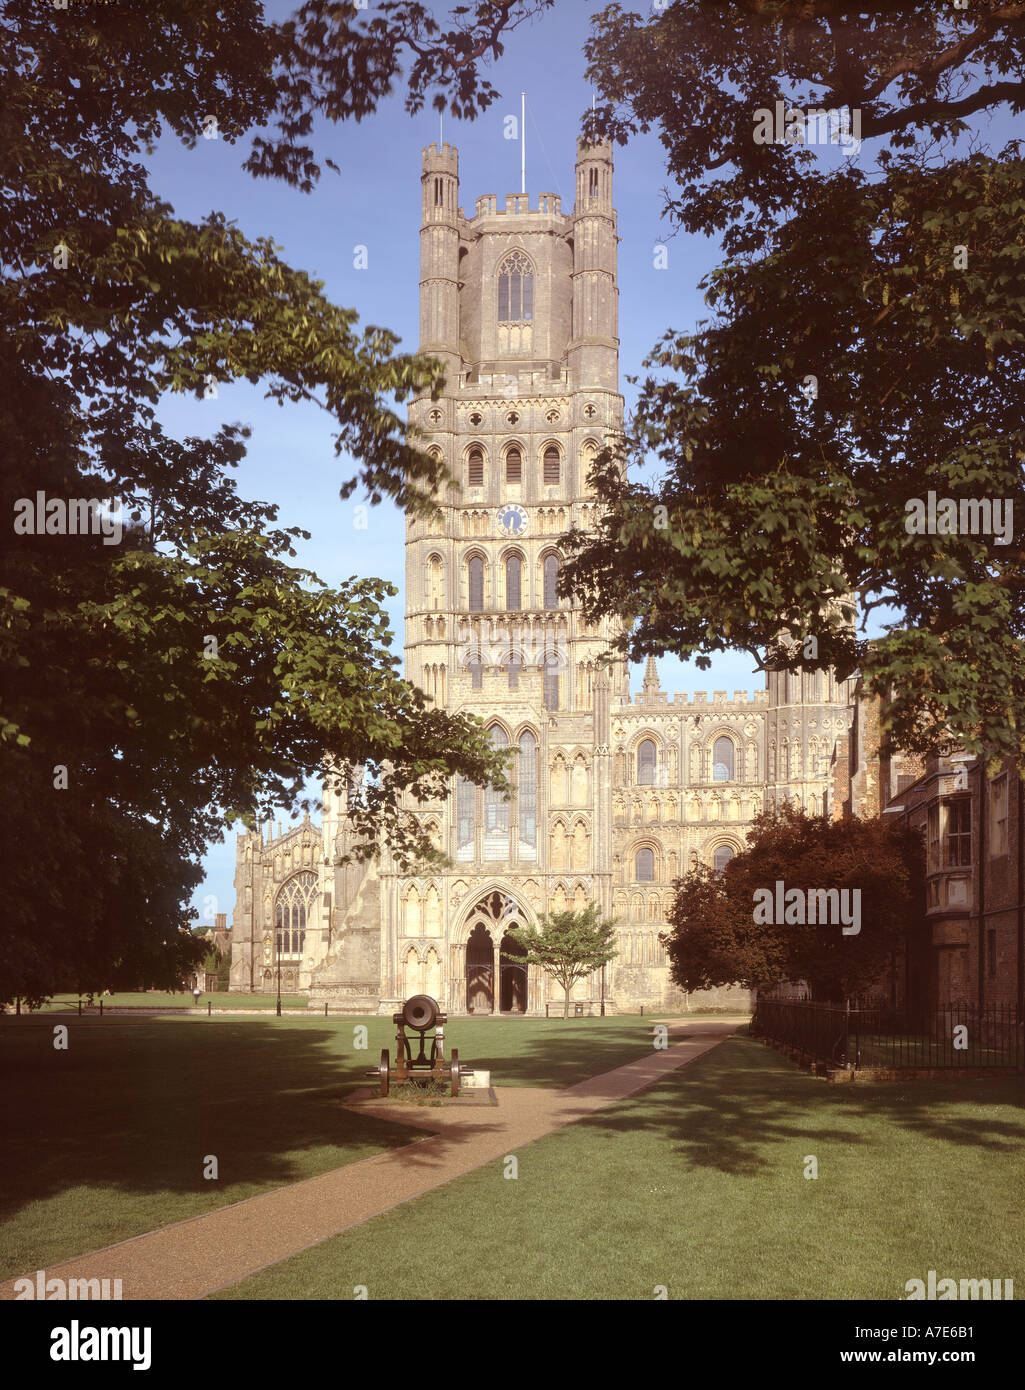 Ely Cathedral from west Ely Cambridgeshire East Anglia England UK - Stock Image